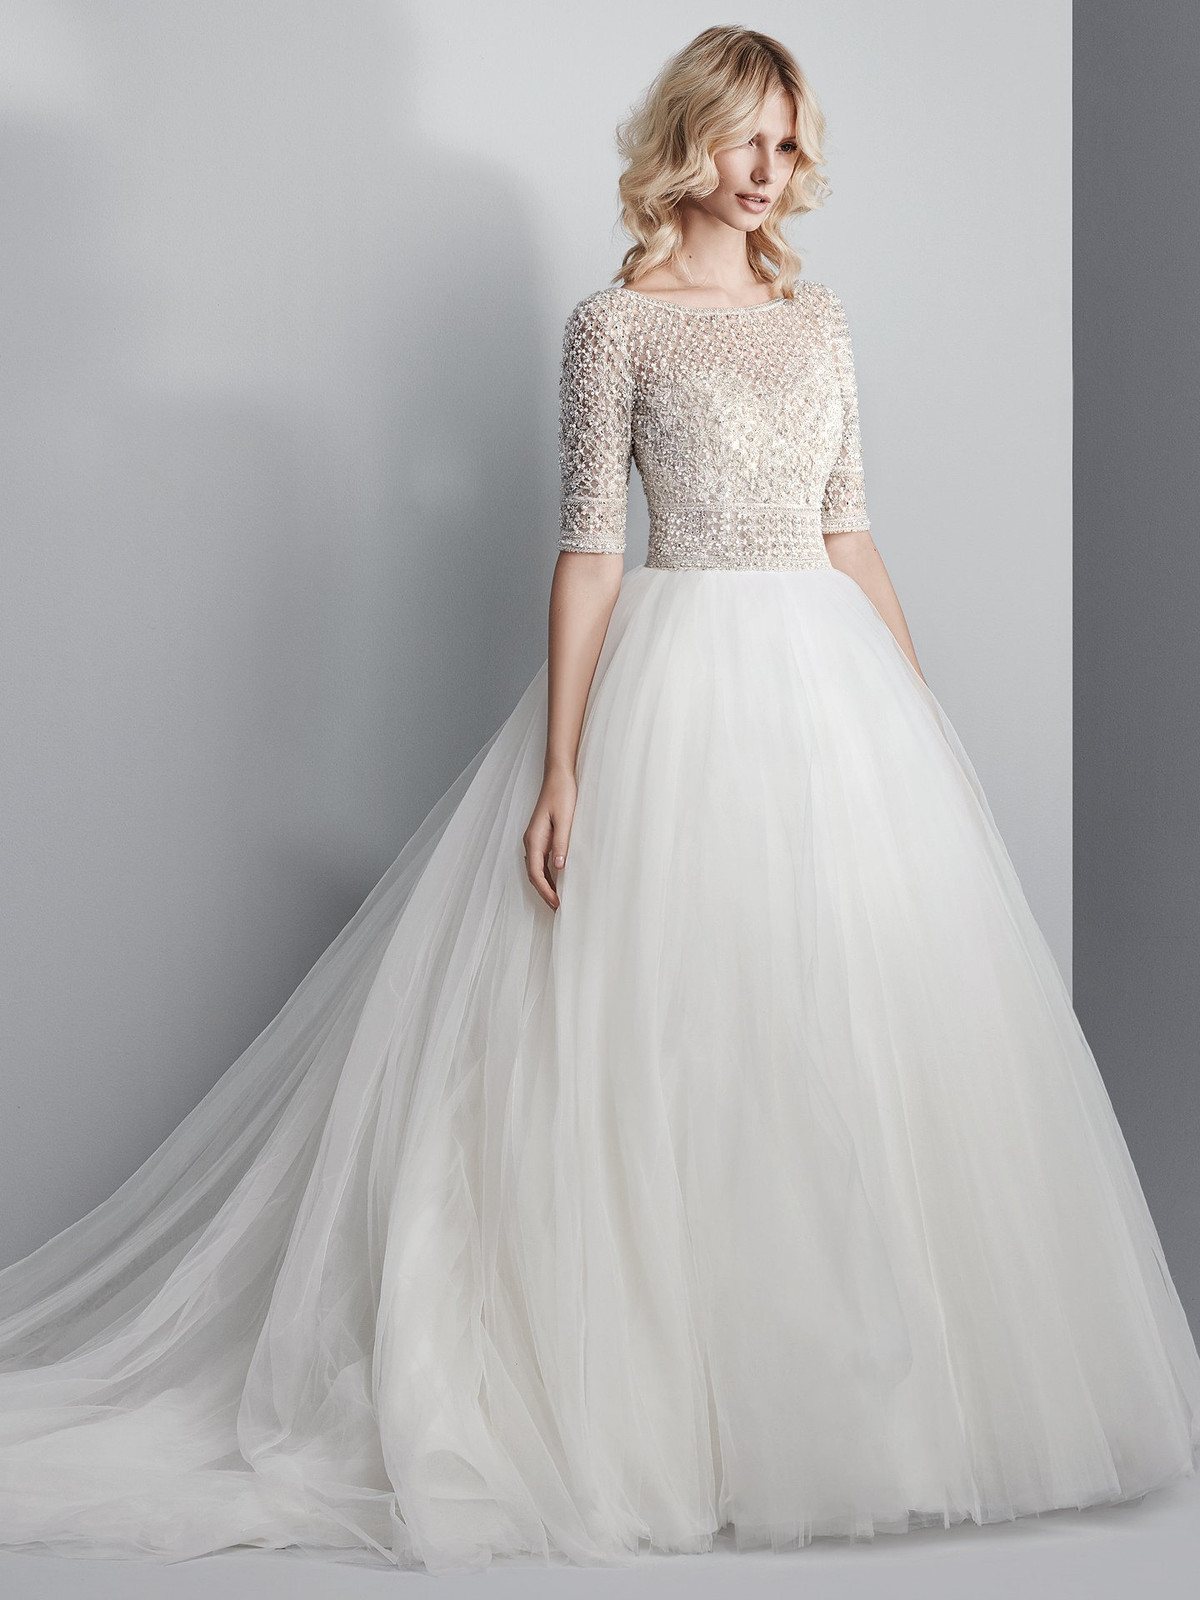 7d165b374 Complete with half-sleeves, an elegant illusion bateau over sweetheart  neckline, and sexy open back.